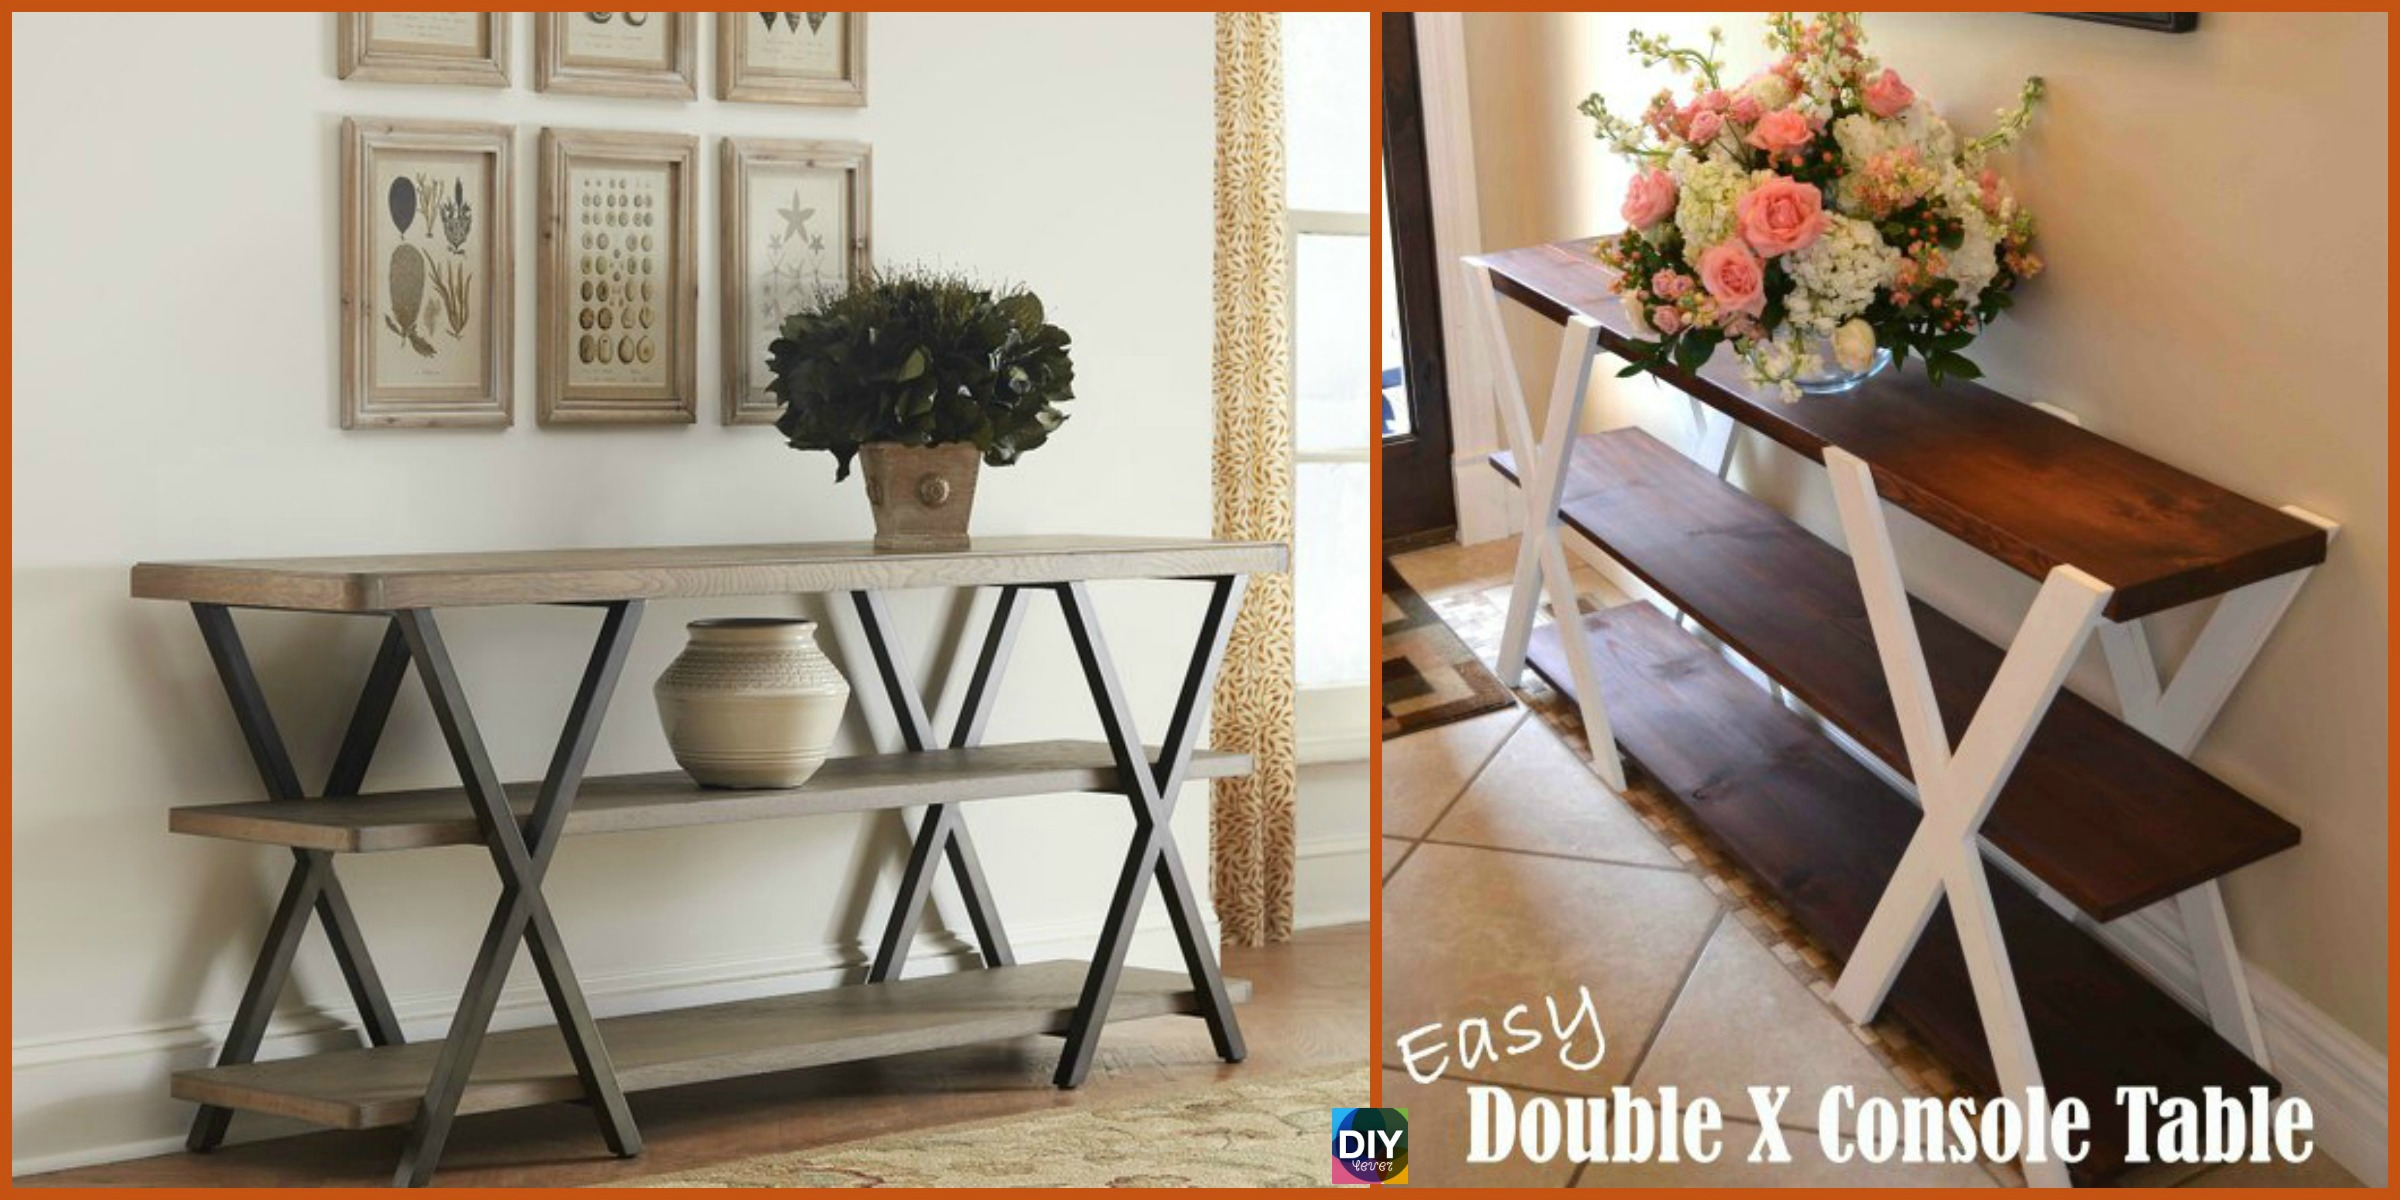 DIY Double X Console Table – Free Plan